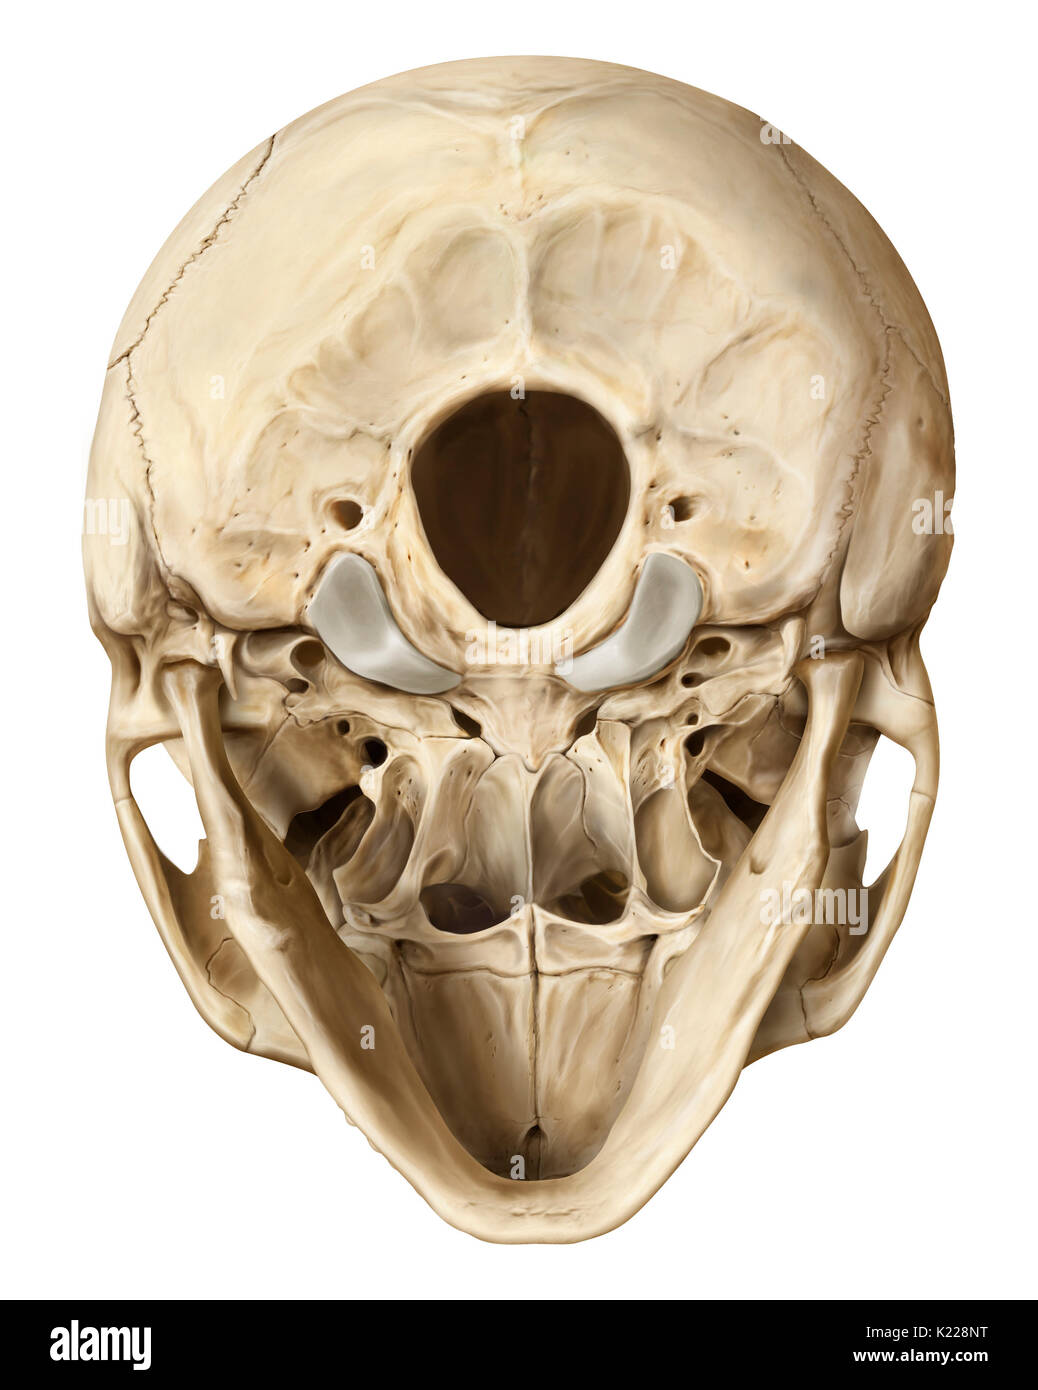 Skull Inferior View Stock Photos & Skull Inferior View Stock Images ...